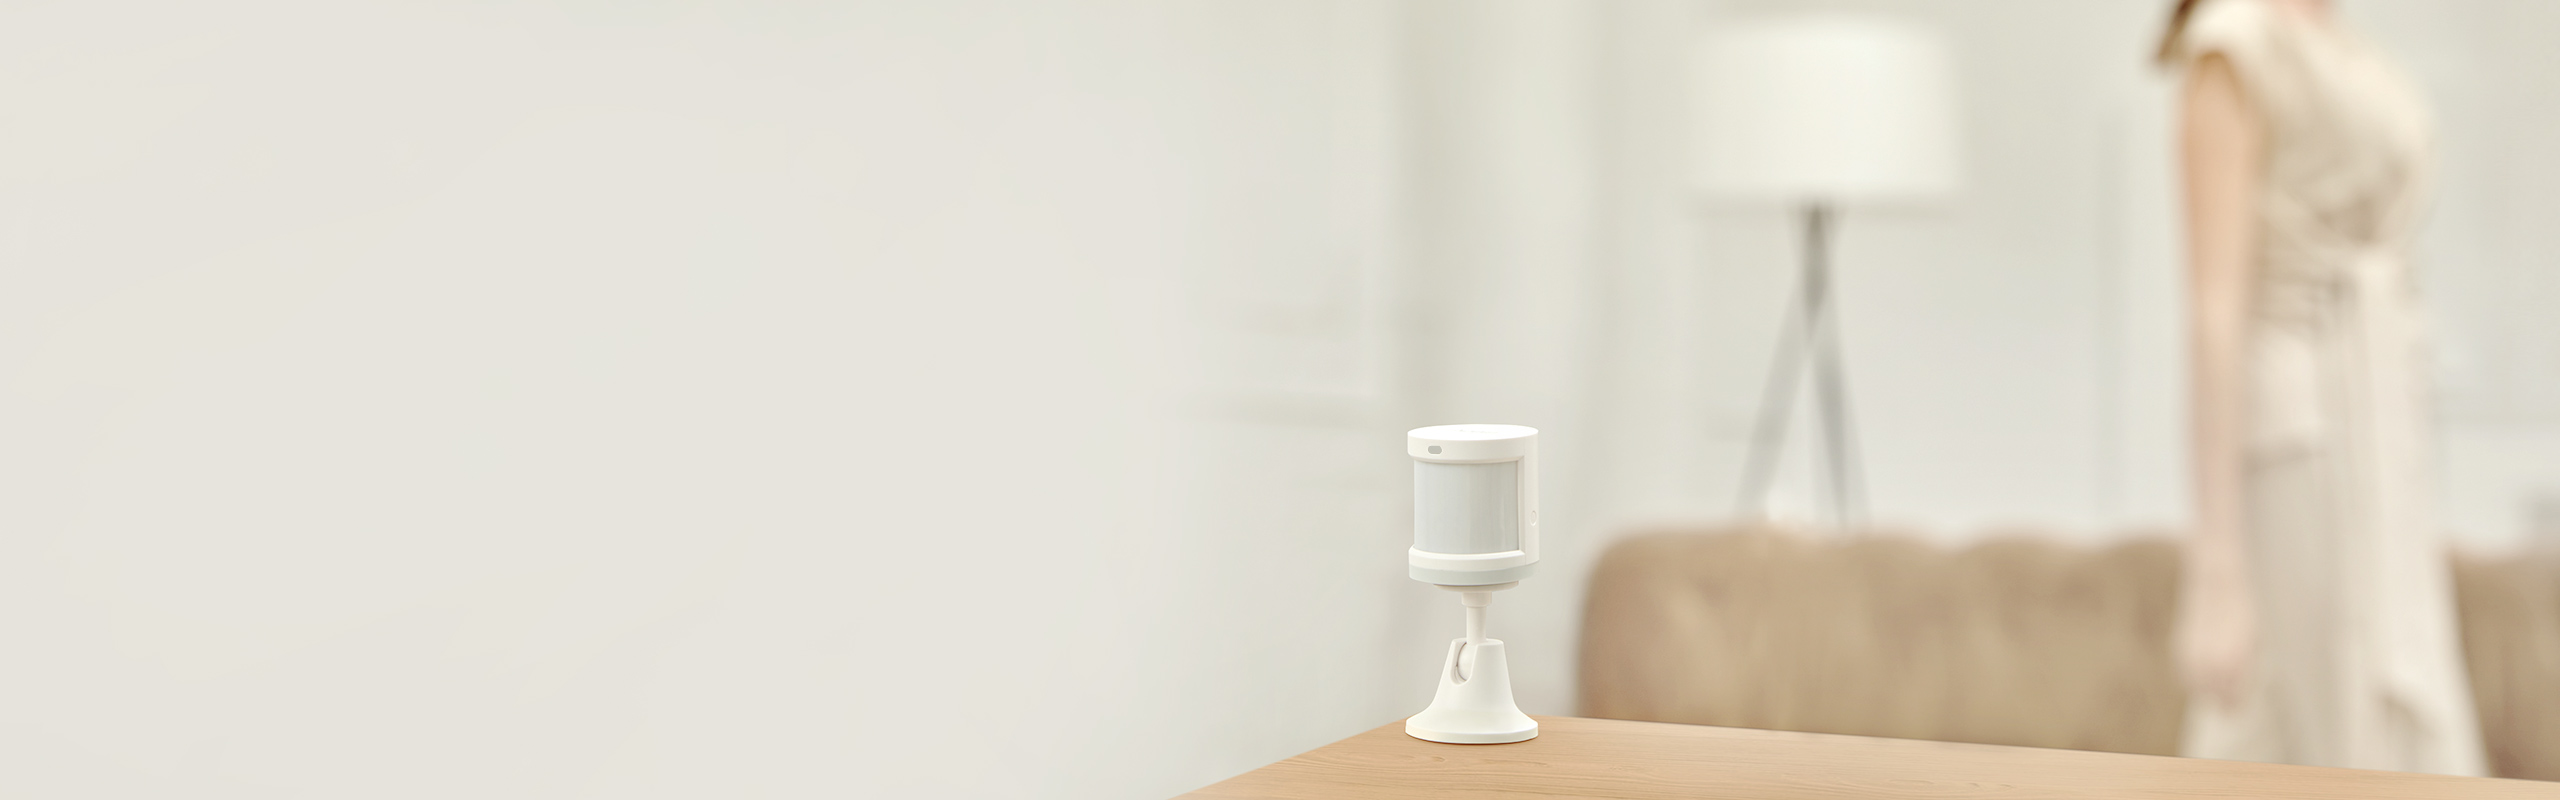 Aqara motion sensor - detects human body and motion in real time.